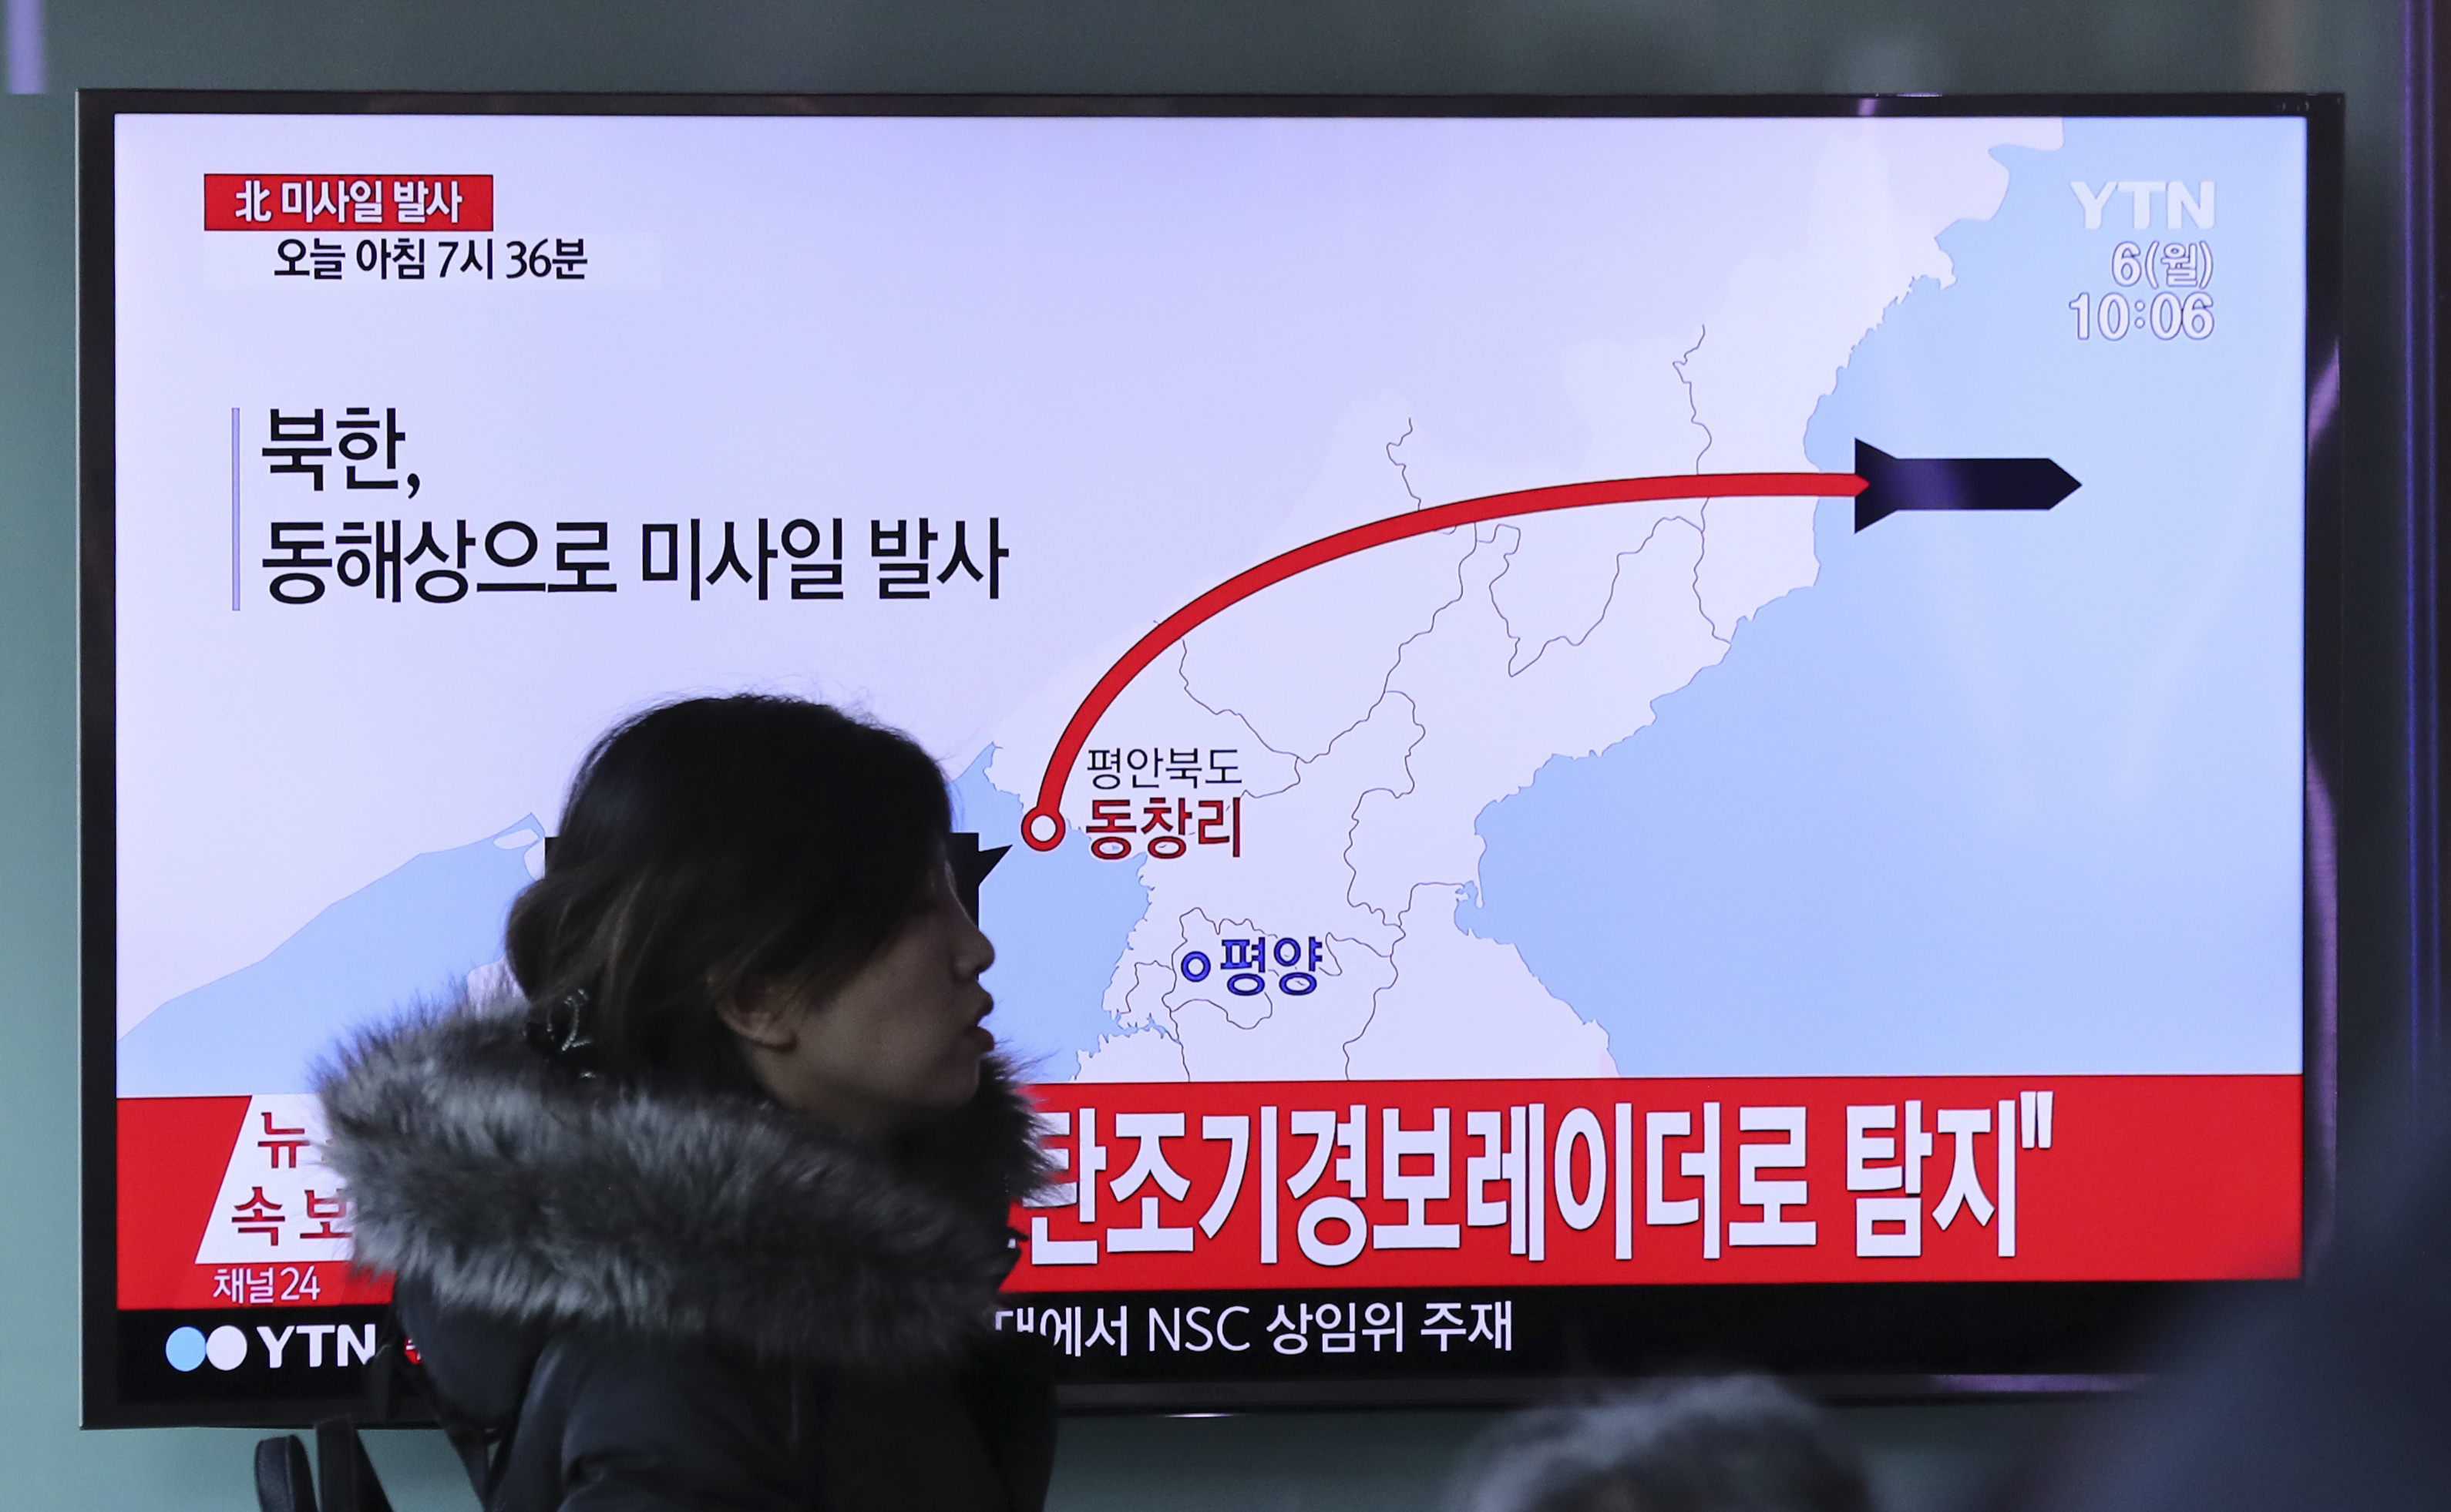 In this March 6, 2017 file photo, a TV screen shows a report about North Korea's missile firing, at Seoul Train Station in South Korea.